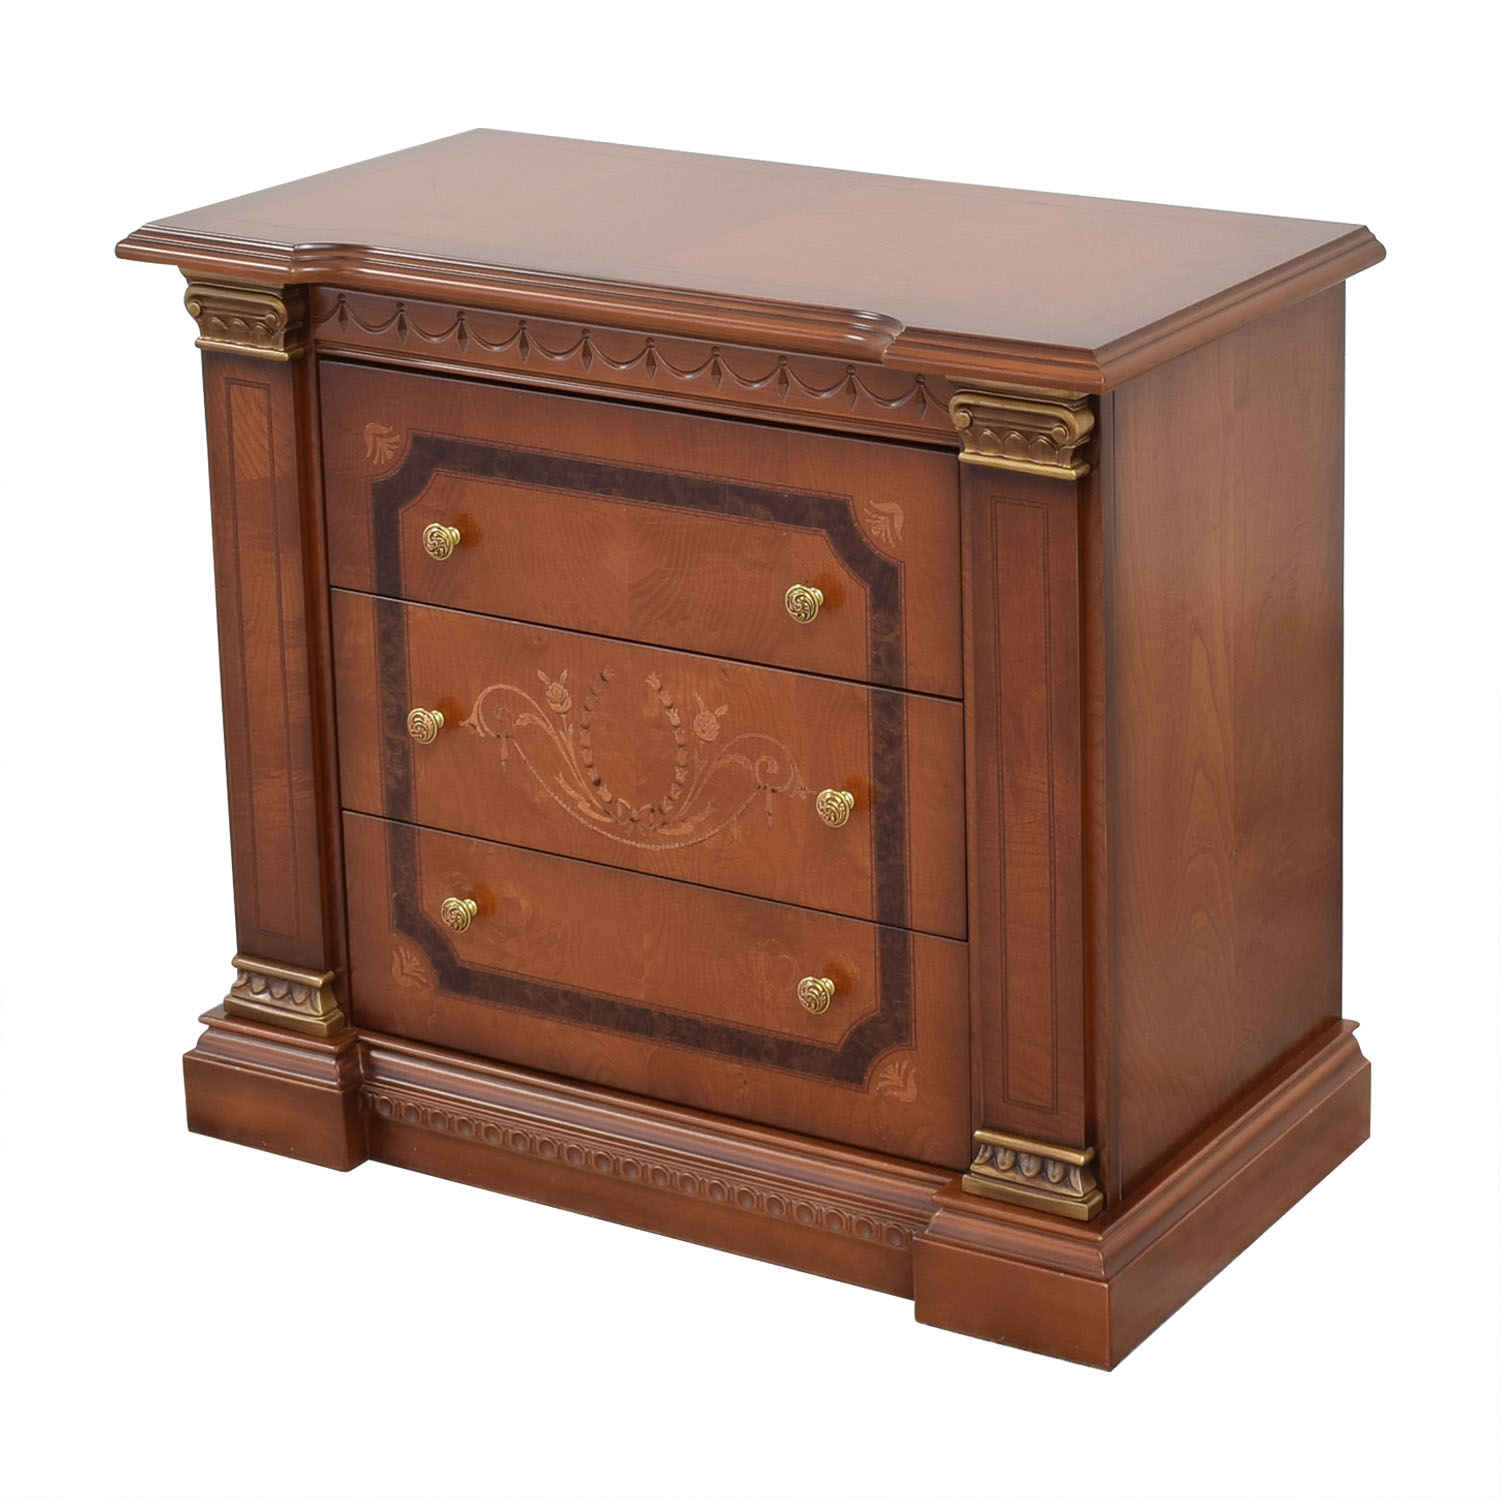 Vintage Chest of Drawers used